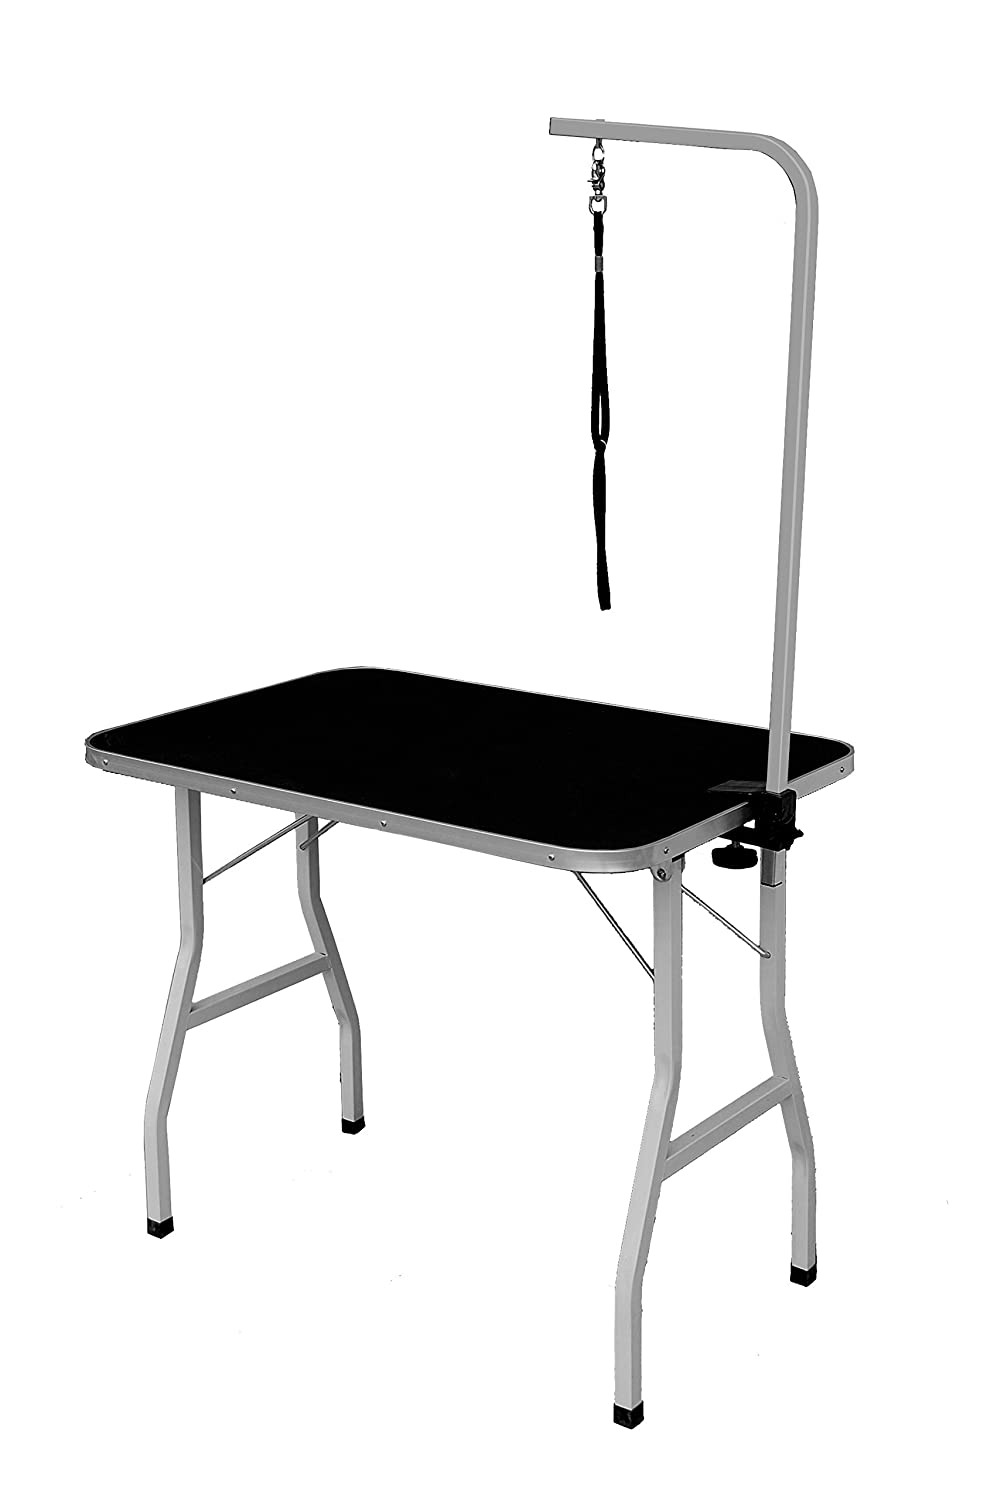 36 New Large Adjustable Pet Grooming Table w/Arm/Noose by BestPet